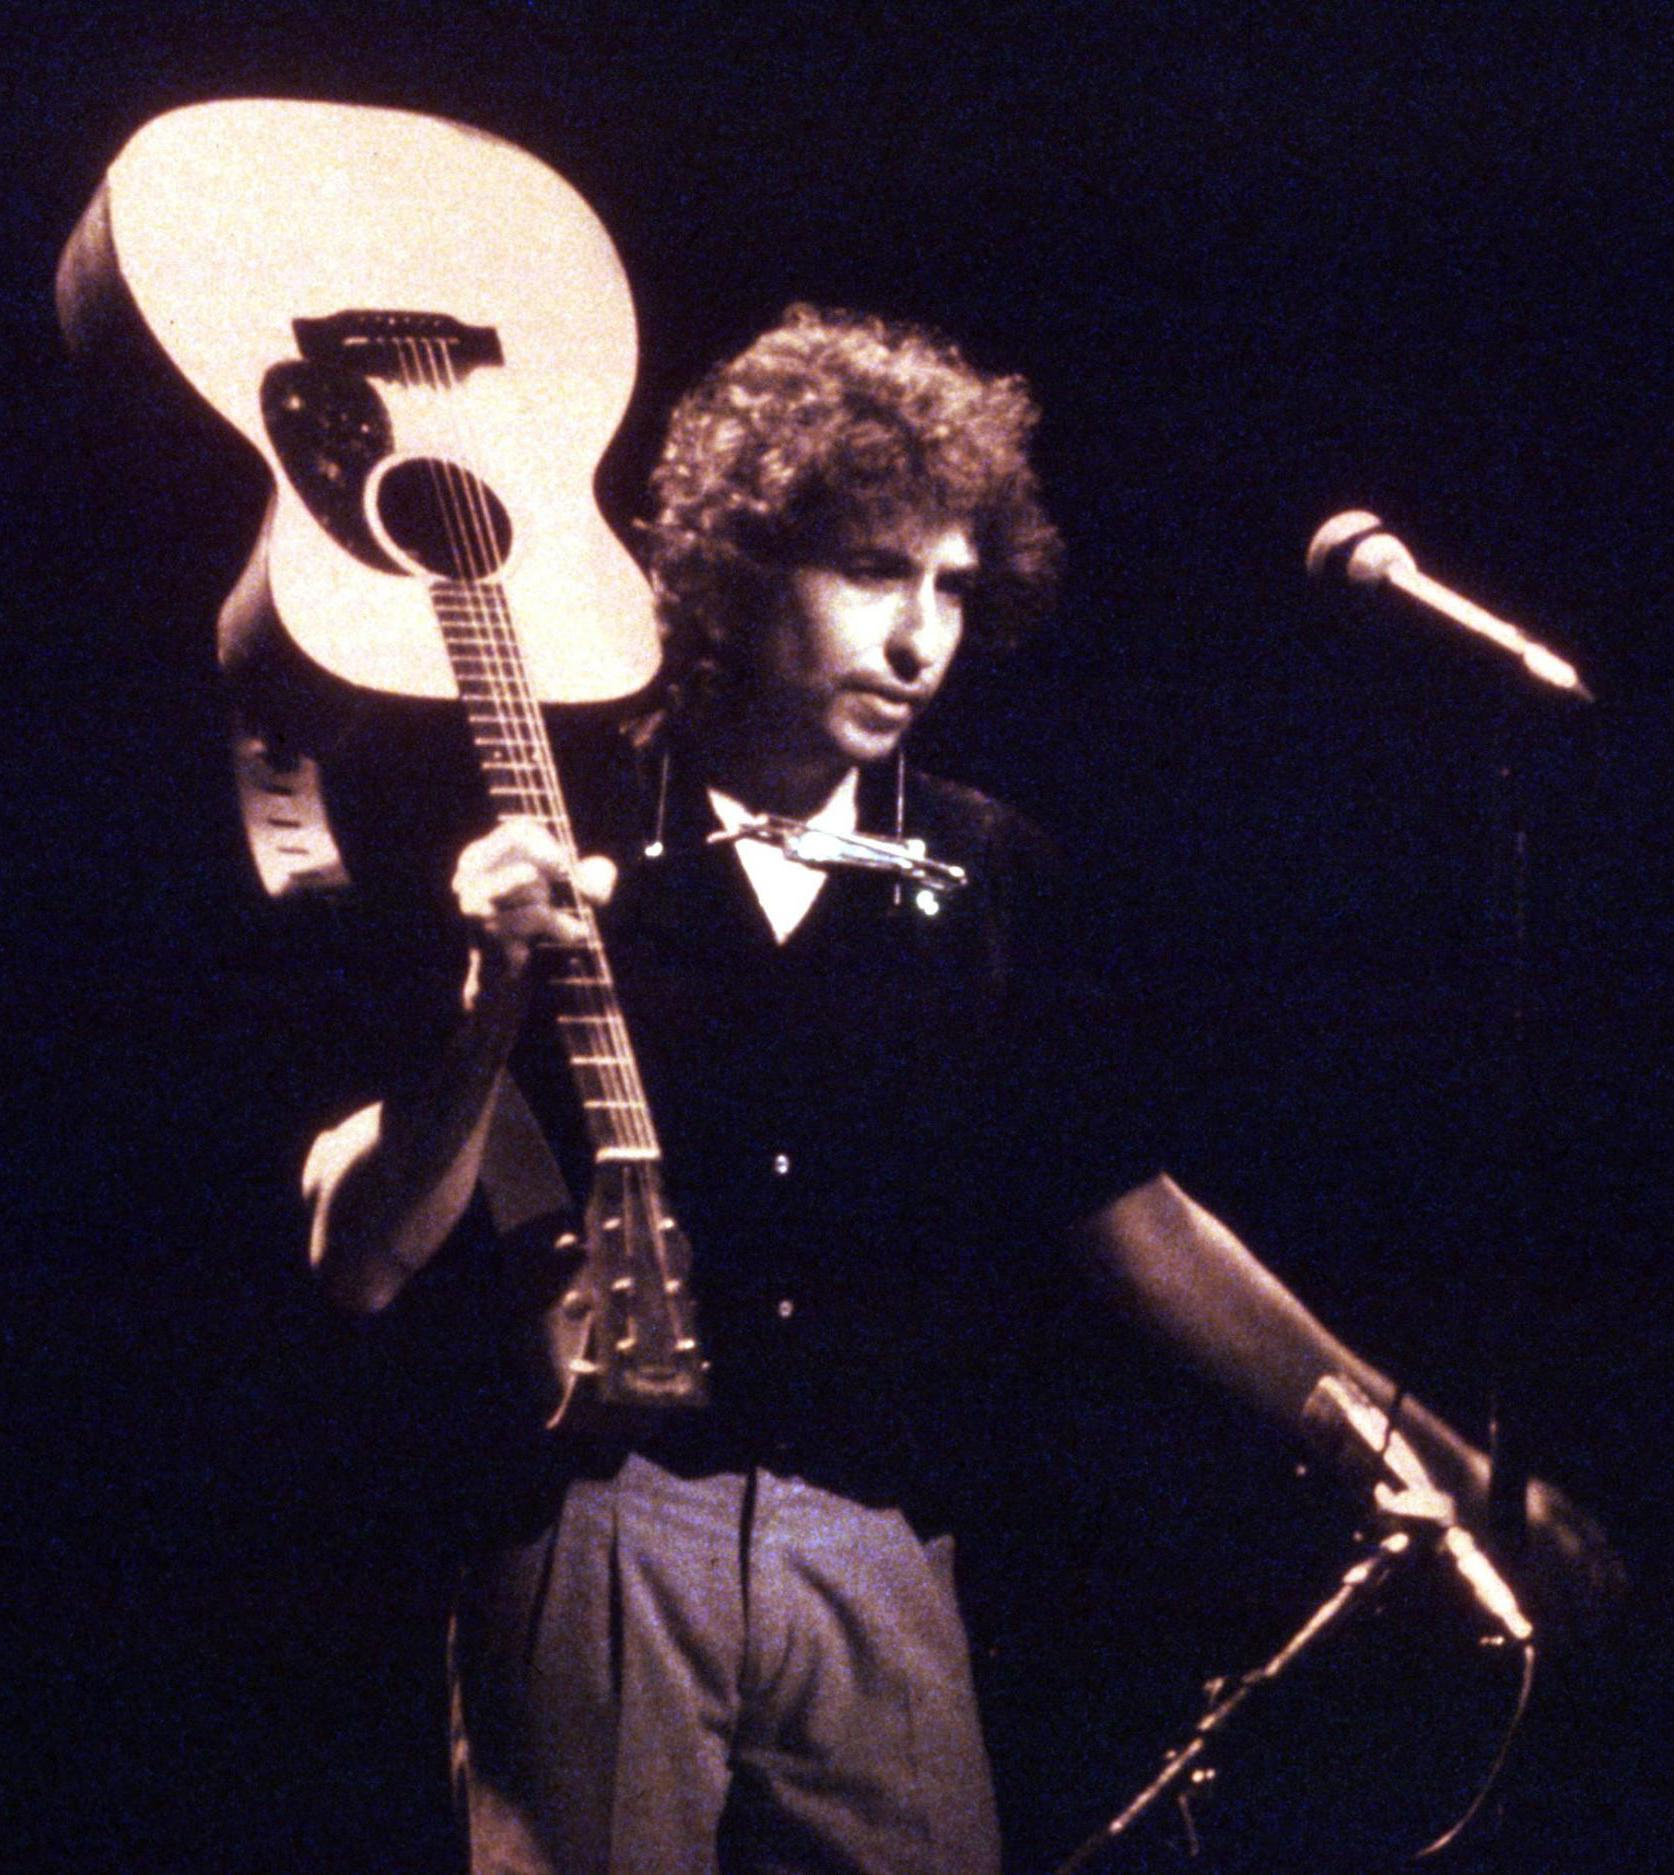 bob dylan concert 10 Celebrities Who Are Surprisingly Super-Religious